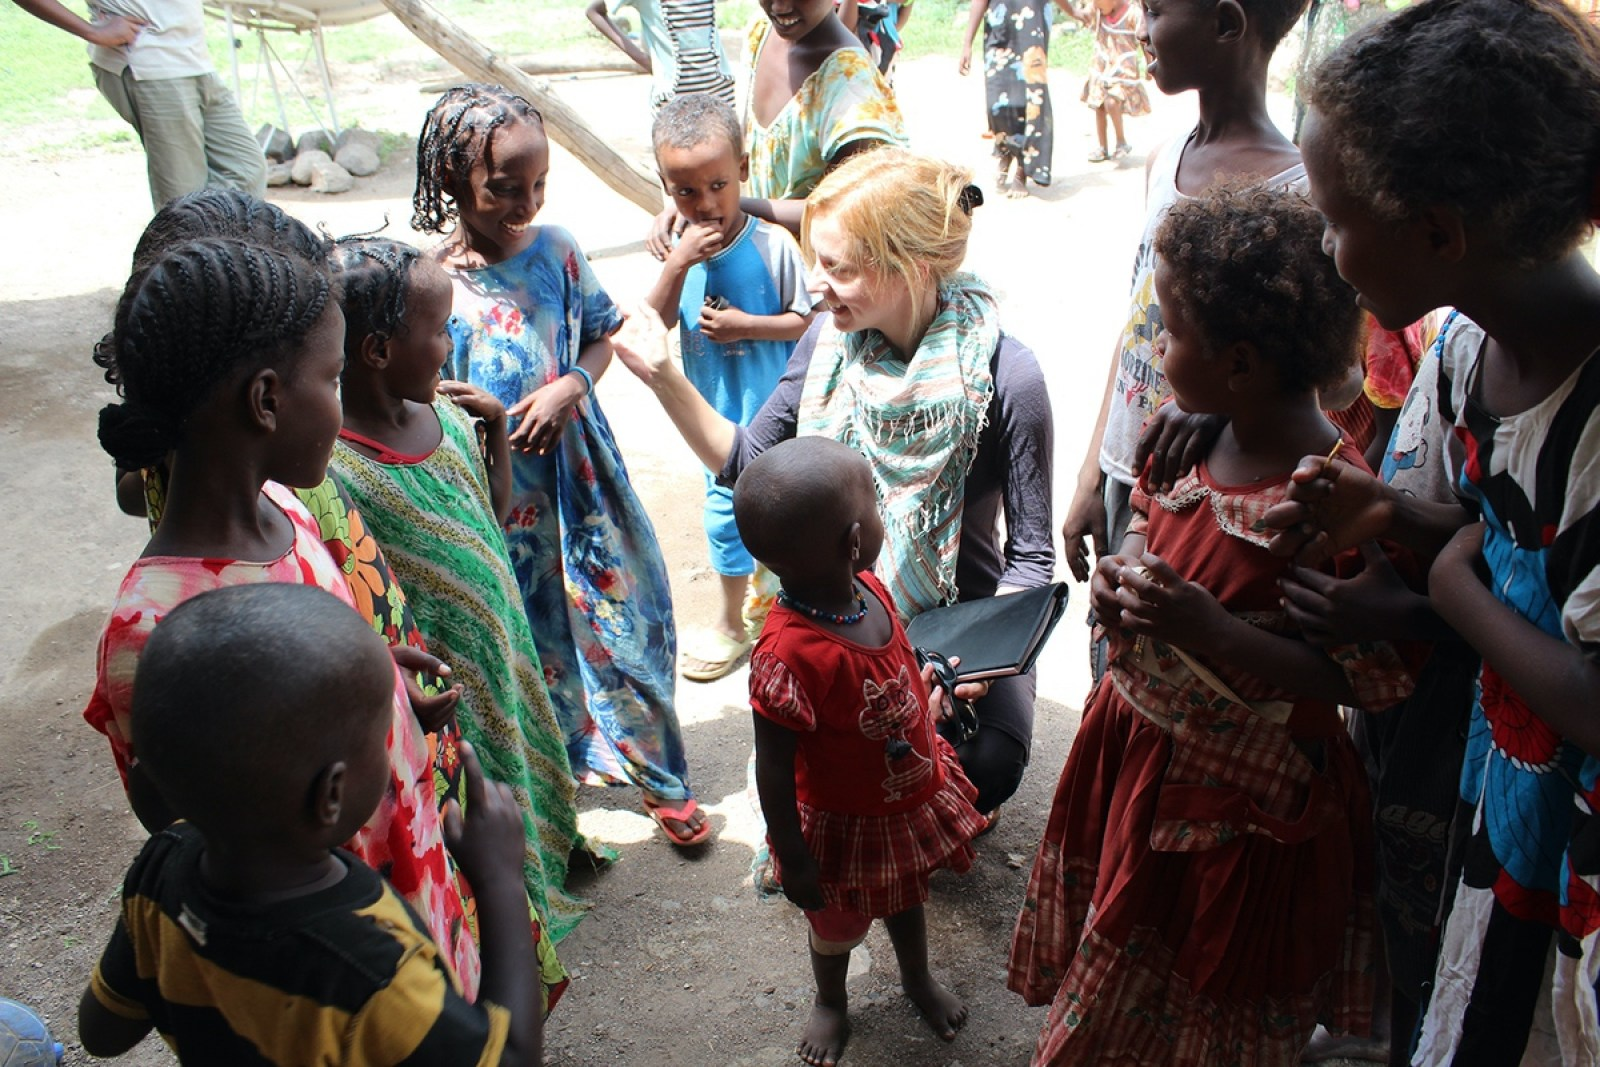 War Child Founder Dr. Samantha Nutt in South Sudan, 2011